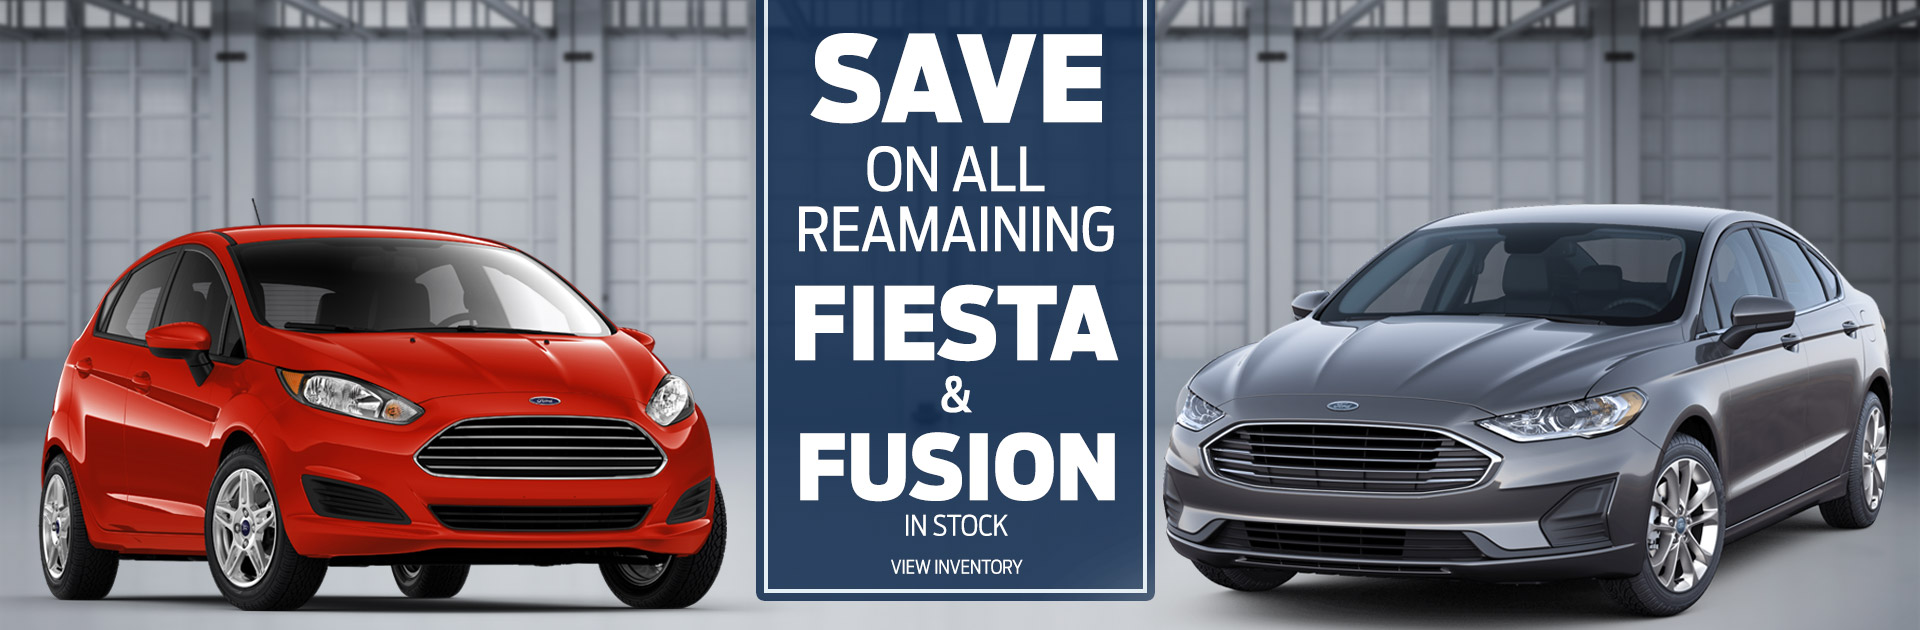 Save On Remaining Fiesta Fusion